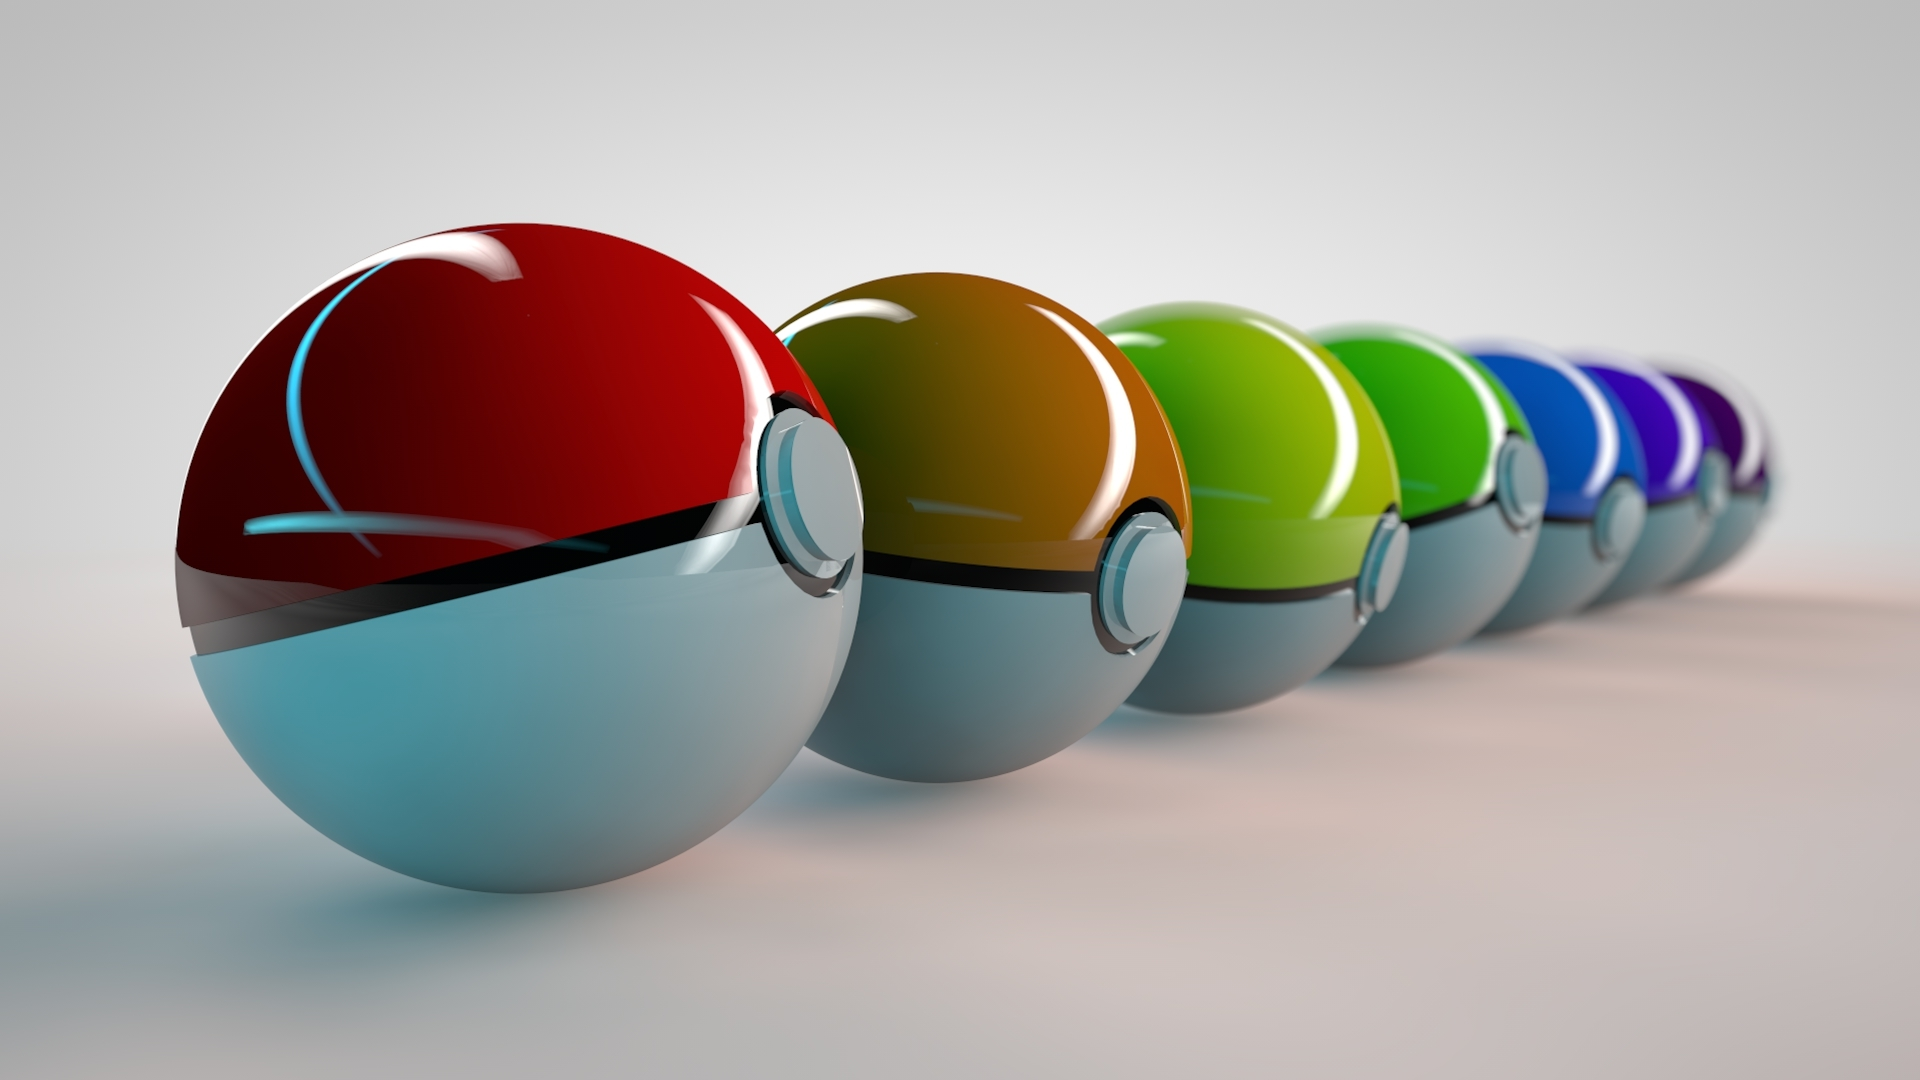 ball-pokemon-wallpapers